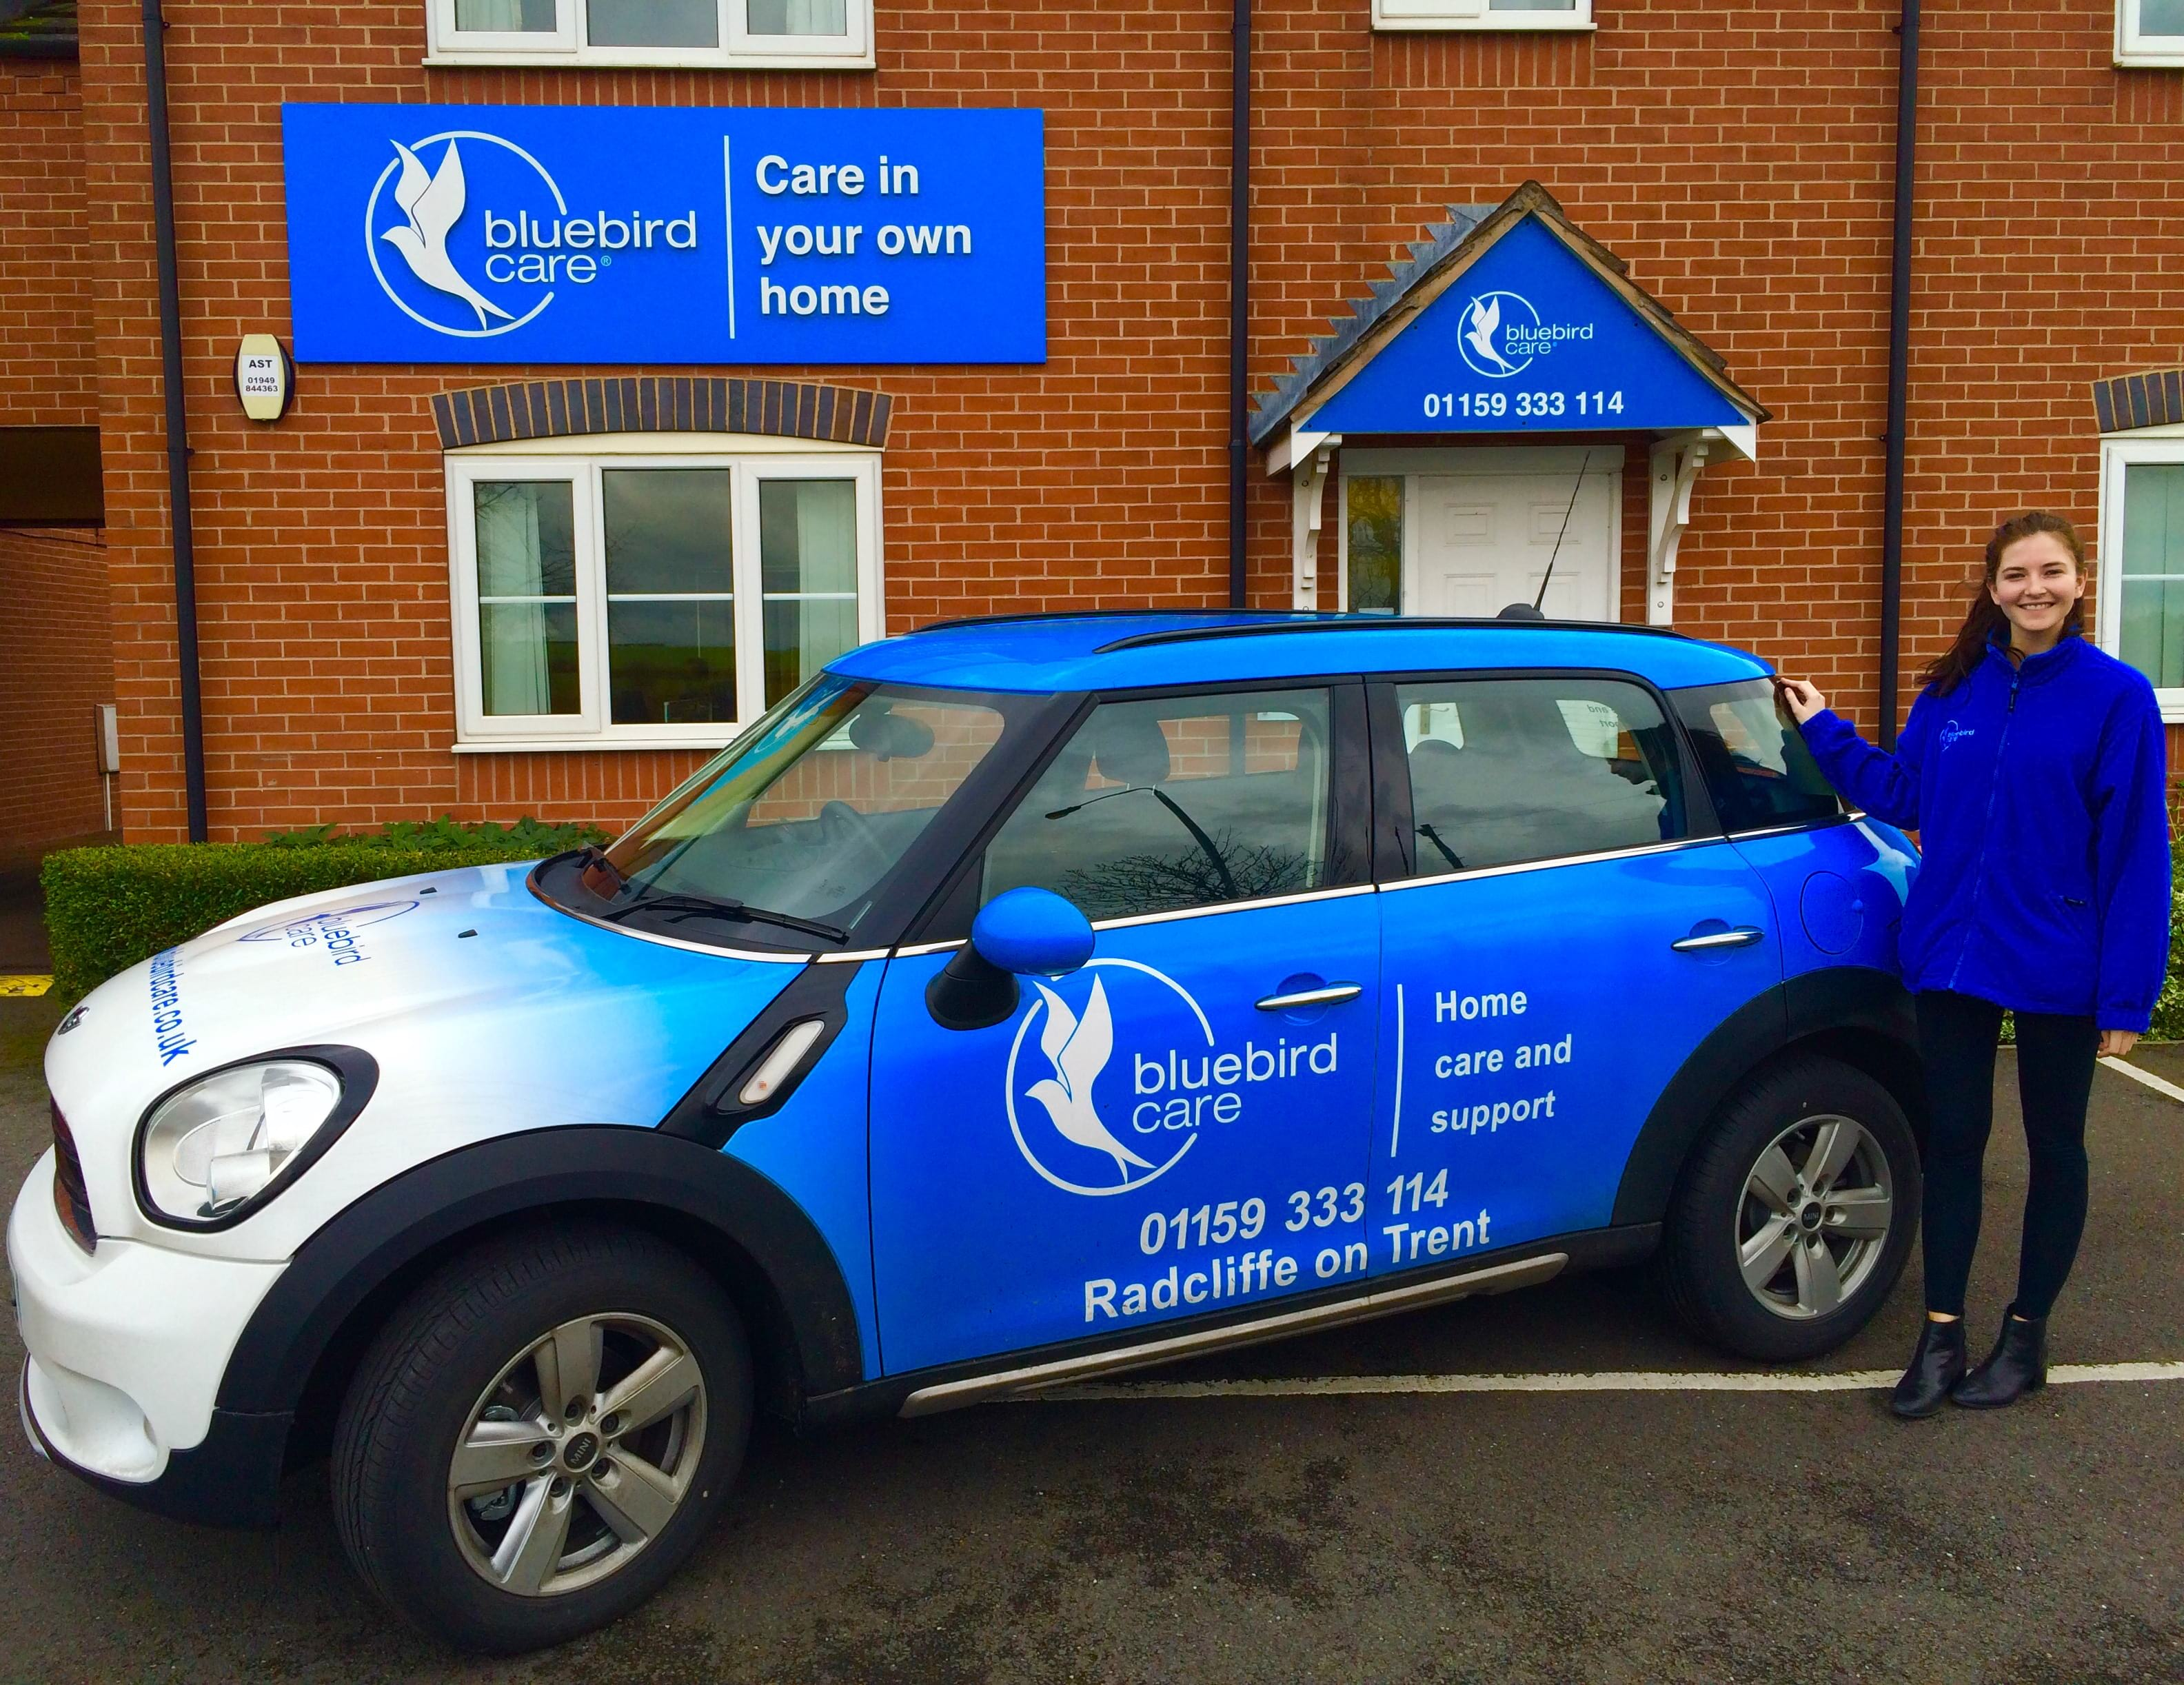 Bluebird Care Mini Countryman Car parked outside office entrance